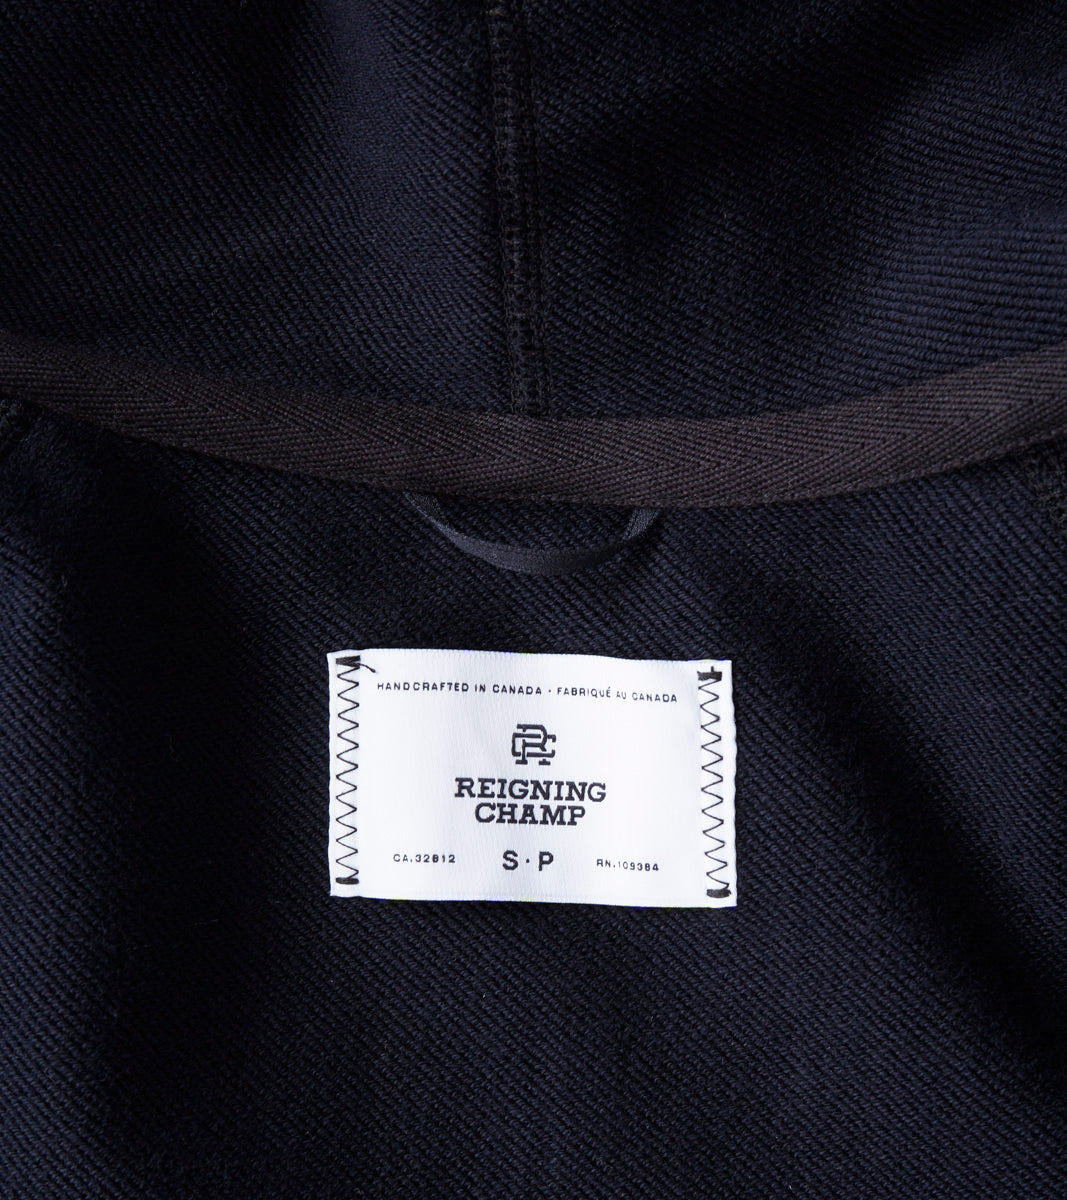 924e1e9beb ... Reigning Champ Hooded Robe - Black Division Road ...